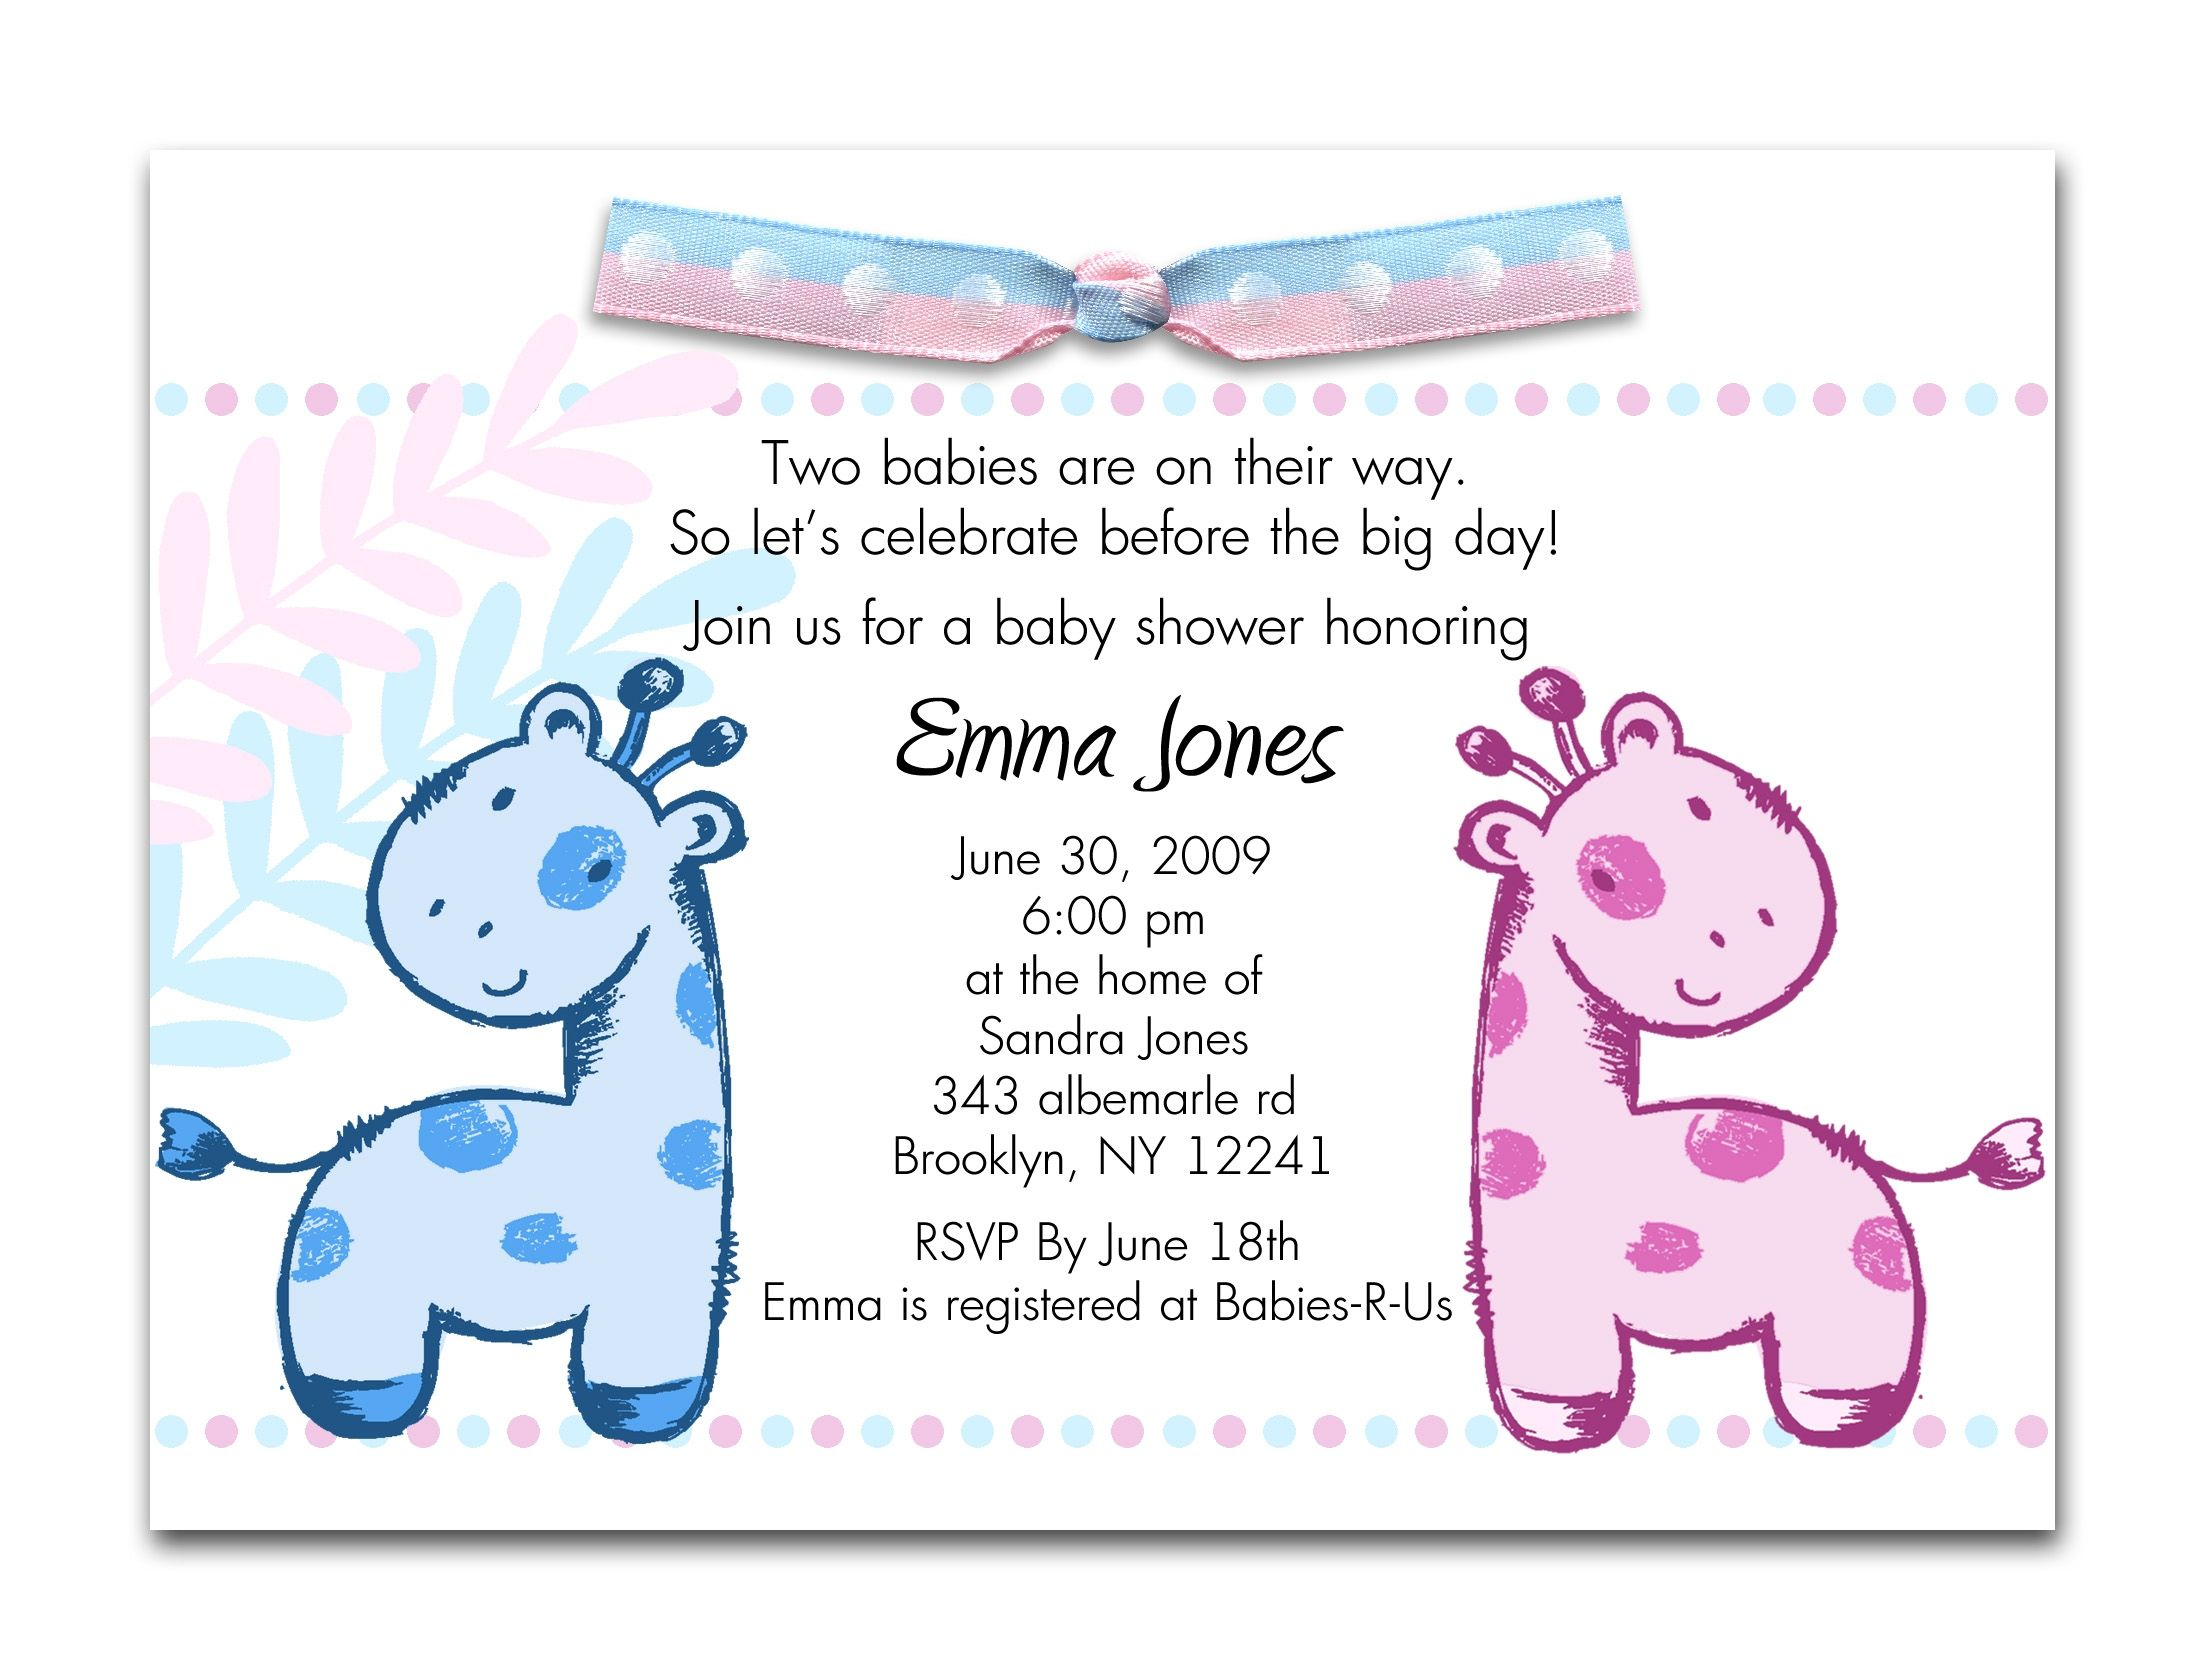 Baby Shower Invitations For Twins Templates | http://atwebry.info ...